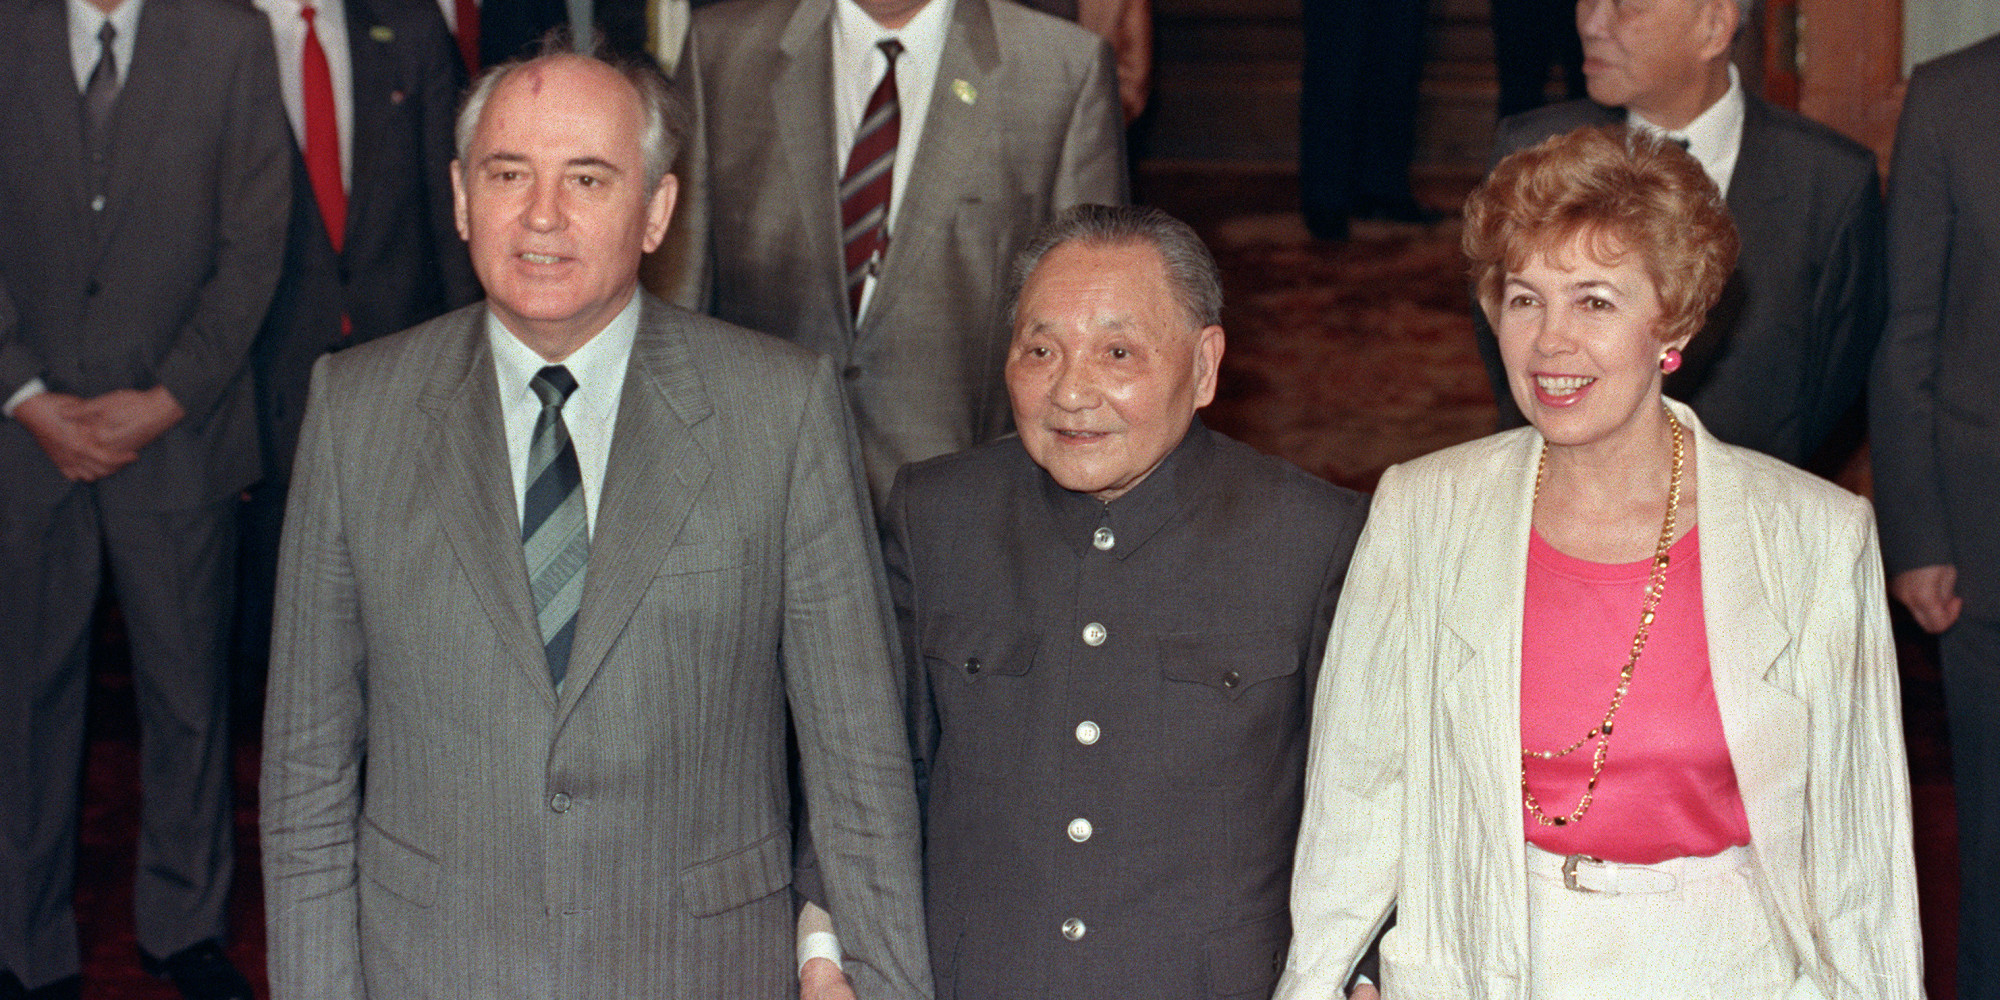 Deng Xiaoping on Gorbachev: 'This Man May Look Smart but in Fact Is Stupid.'